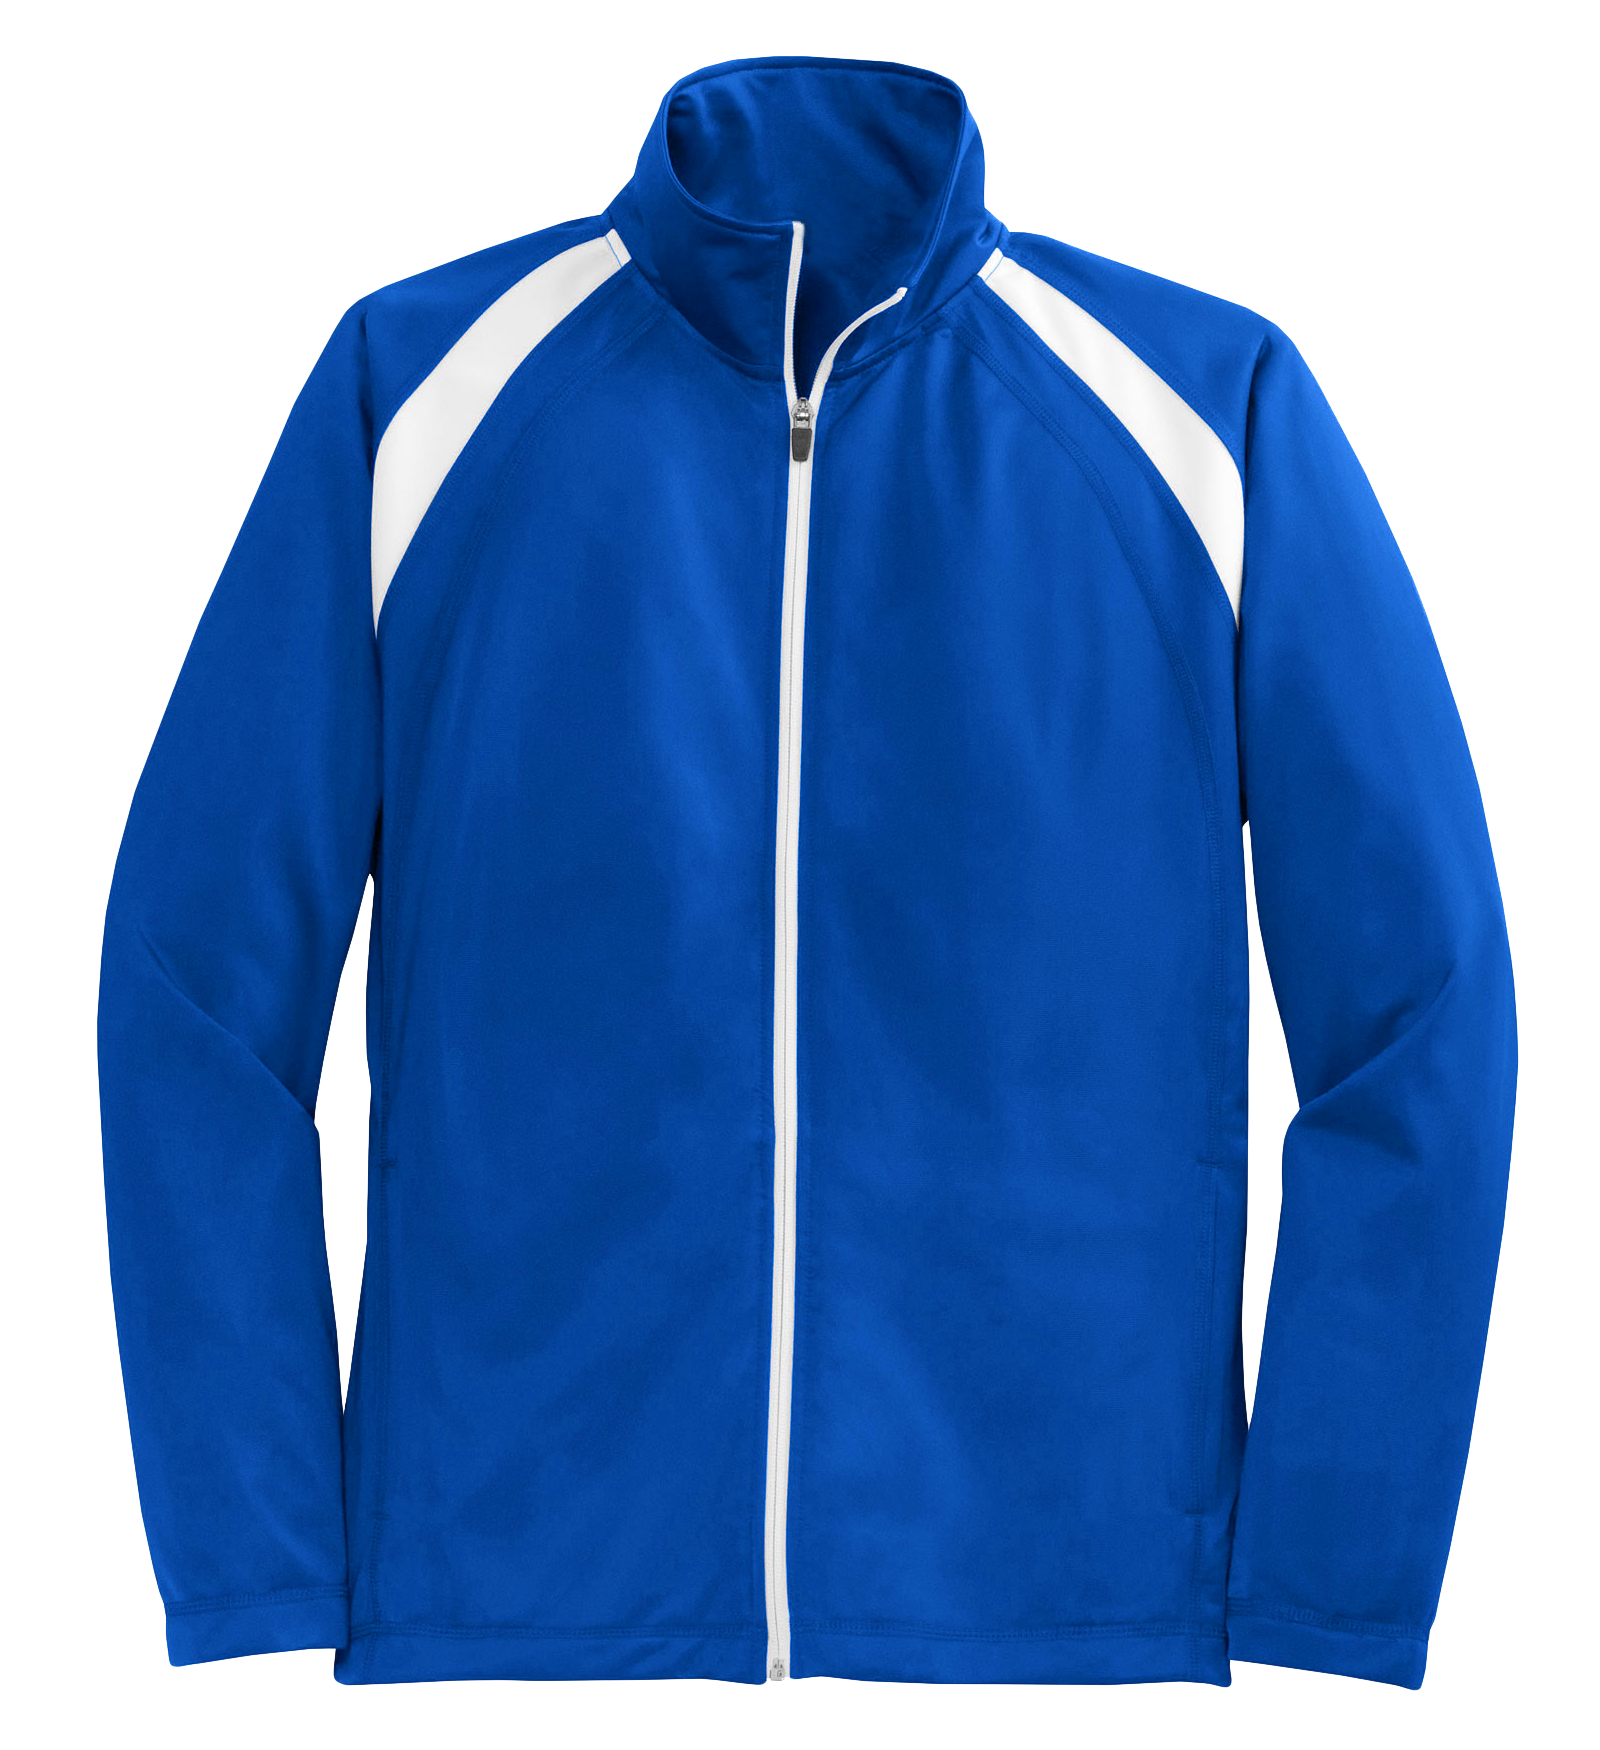 Jacket png transparent image. Coat clipart blue coat